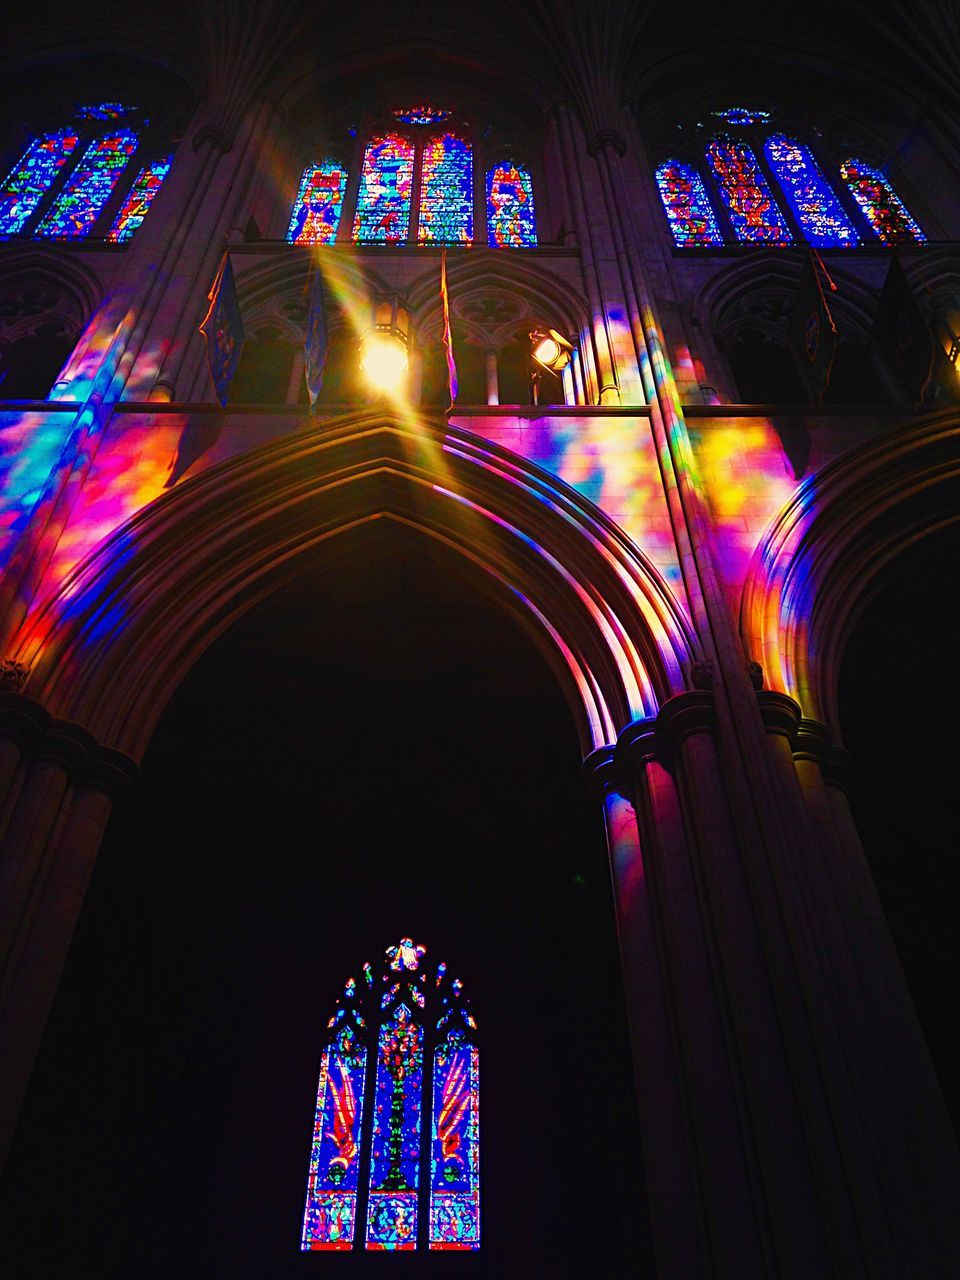 multi colored, indoors, low angle view, place of worship, window, no people, religion, illuminated, architecture, day